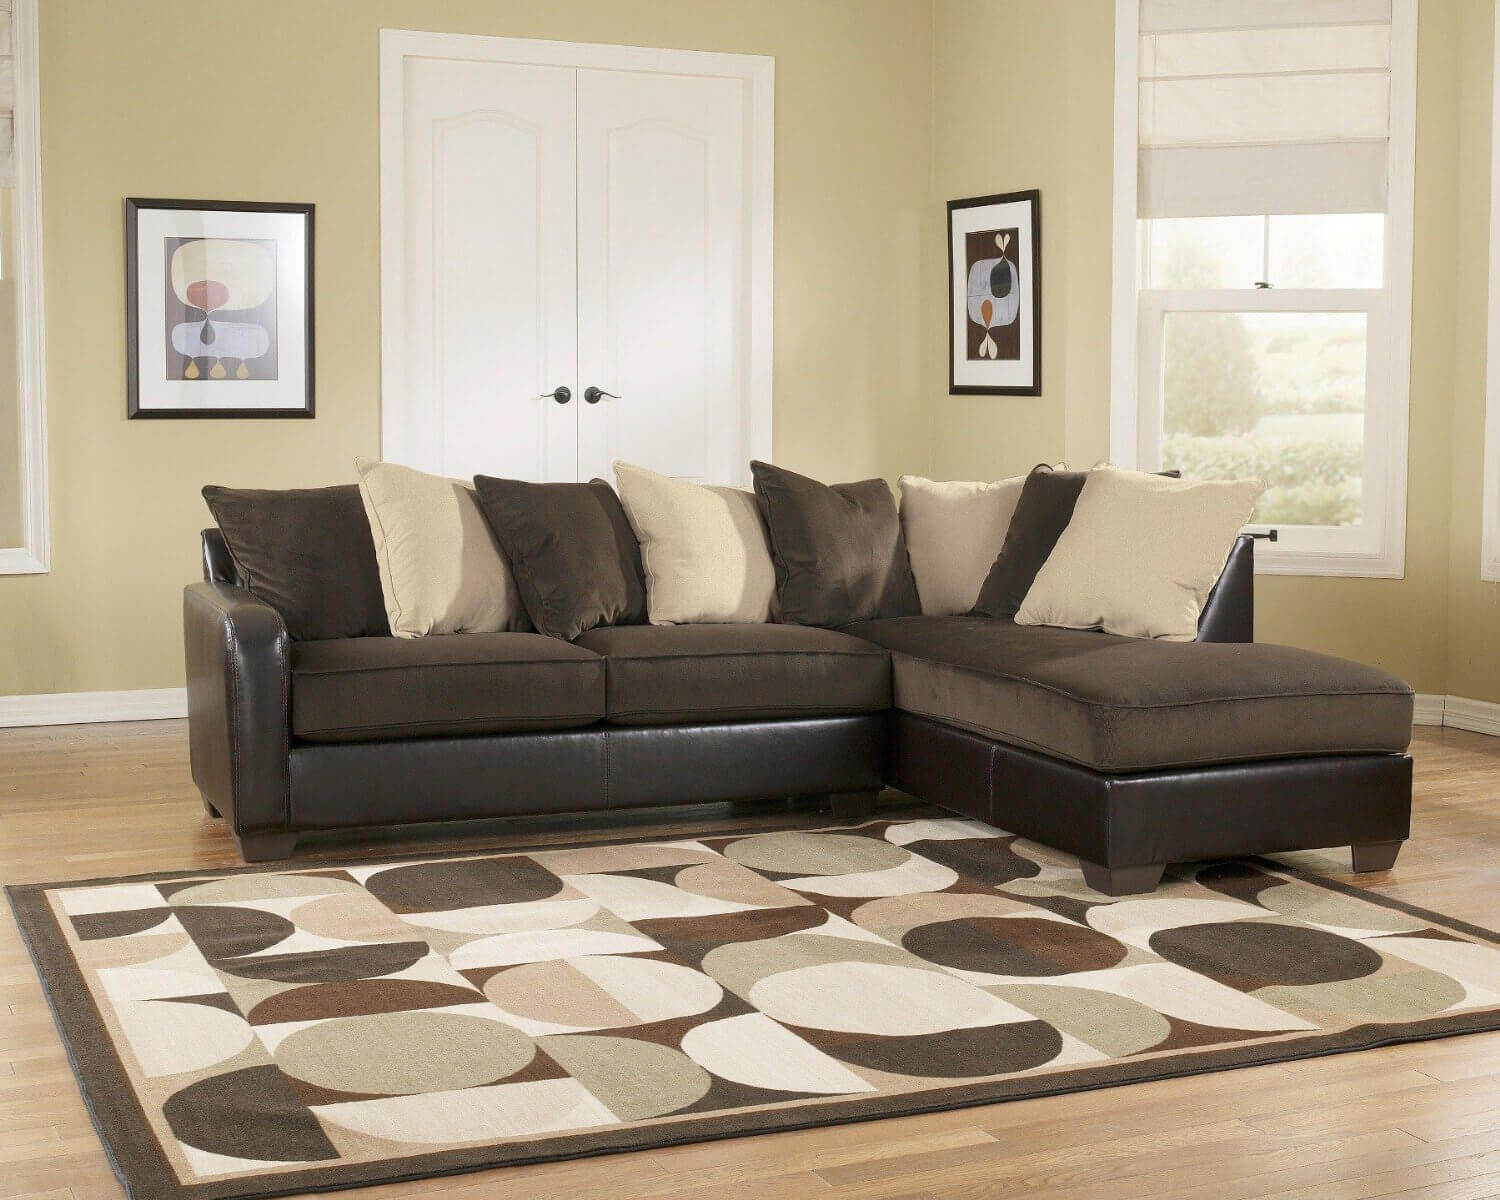 Sectional Sofas Under 1000 on living room furniture chaise